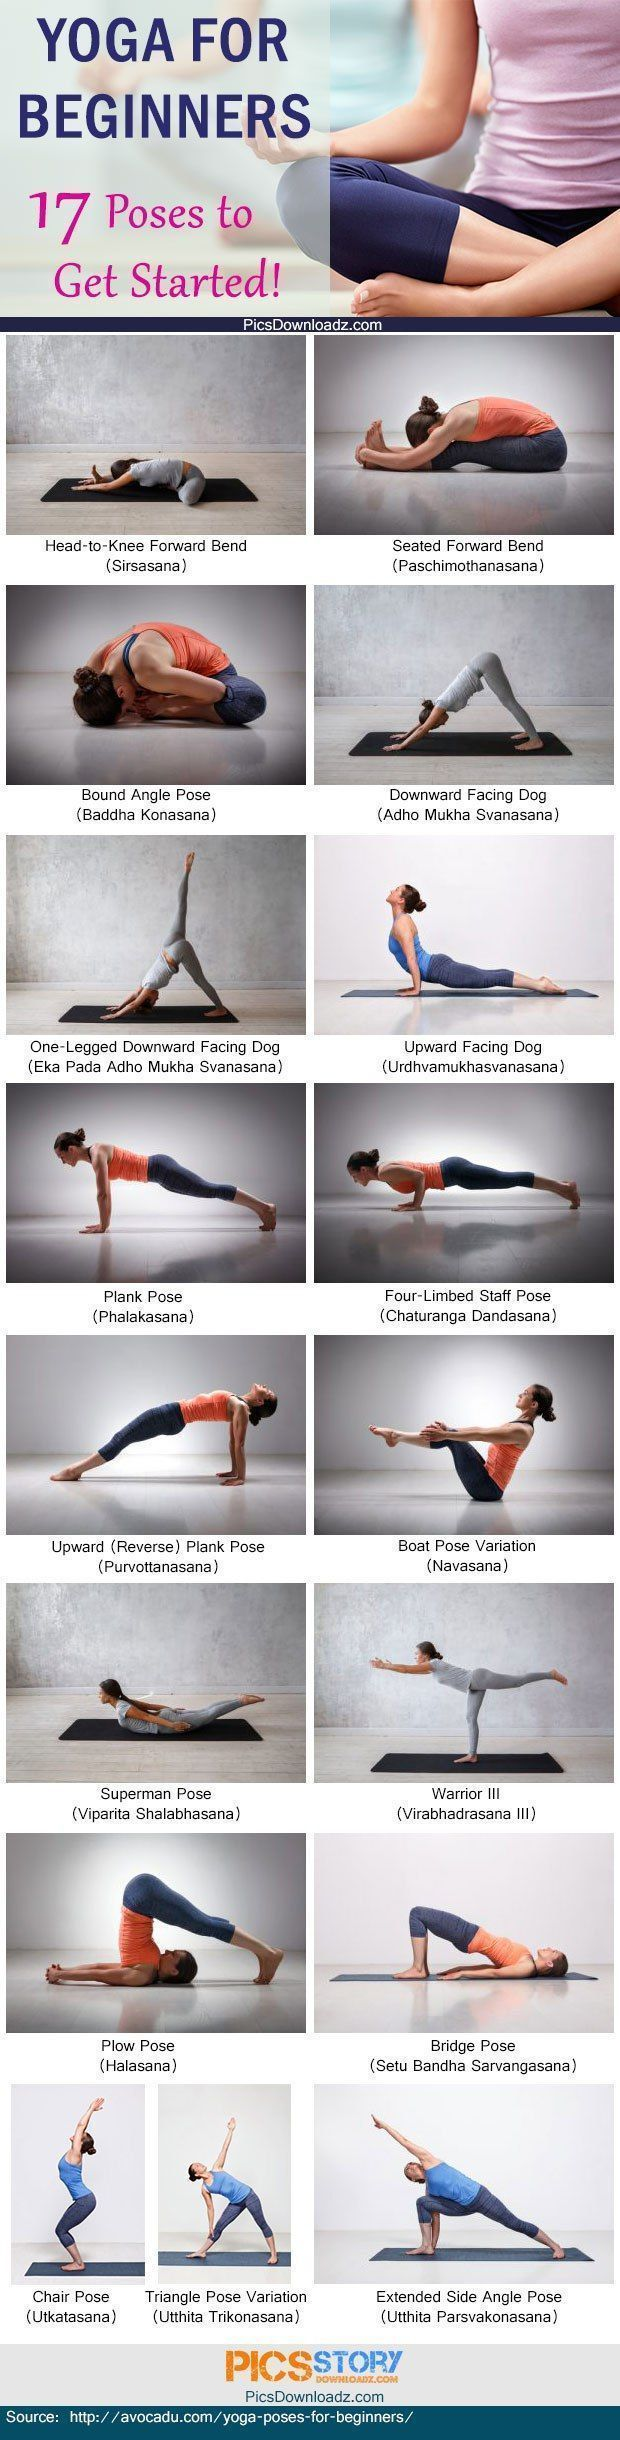 Yoga for beginners | Posted By: CustomWeightLossProgram.com